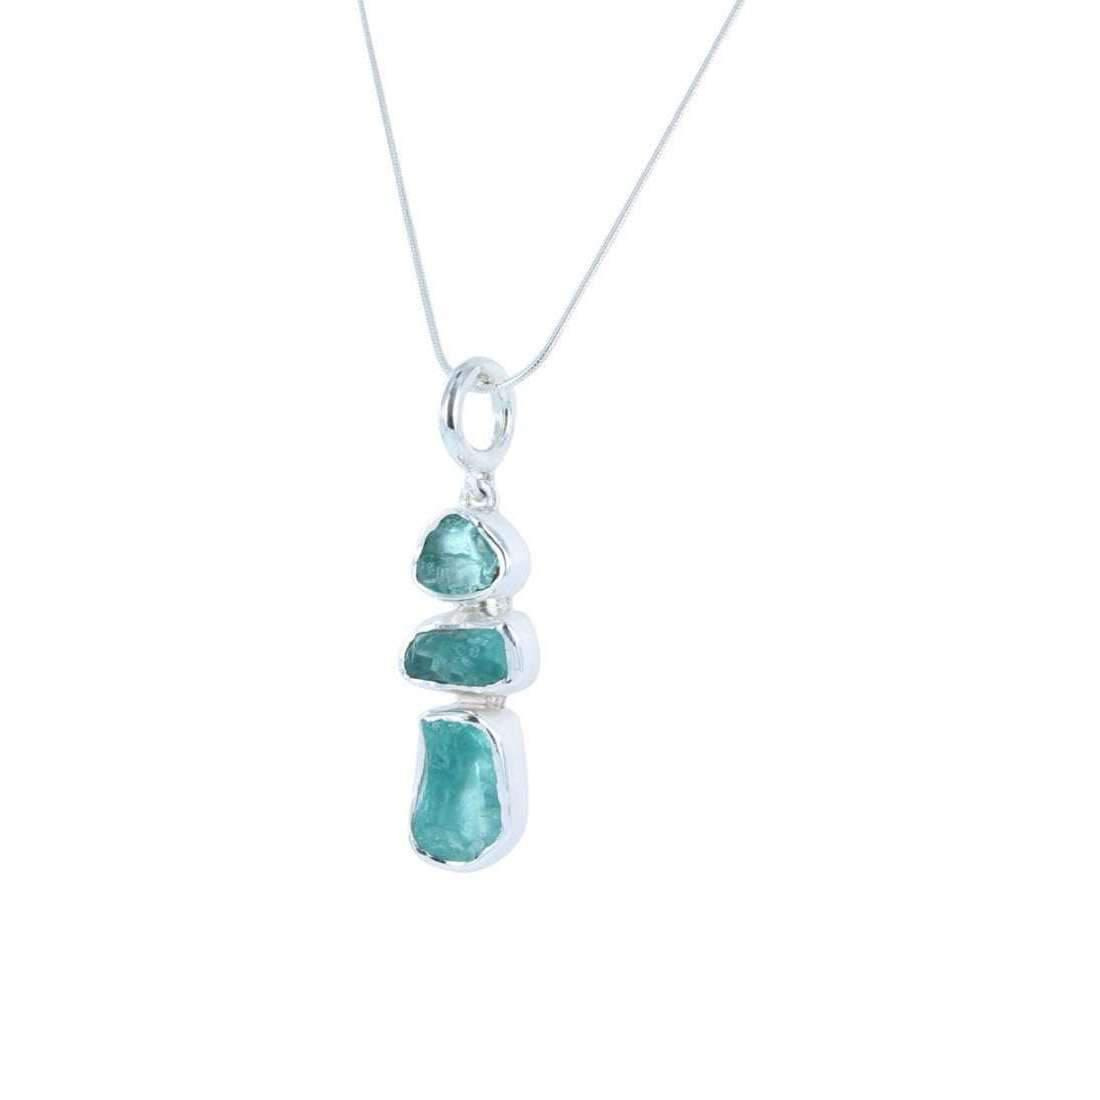 Reeves and reeves rough stone apatite pendant necklace lyst reeves and reeves womens rough stone apatite pendant necklace mozeypictures Images